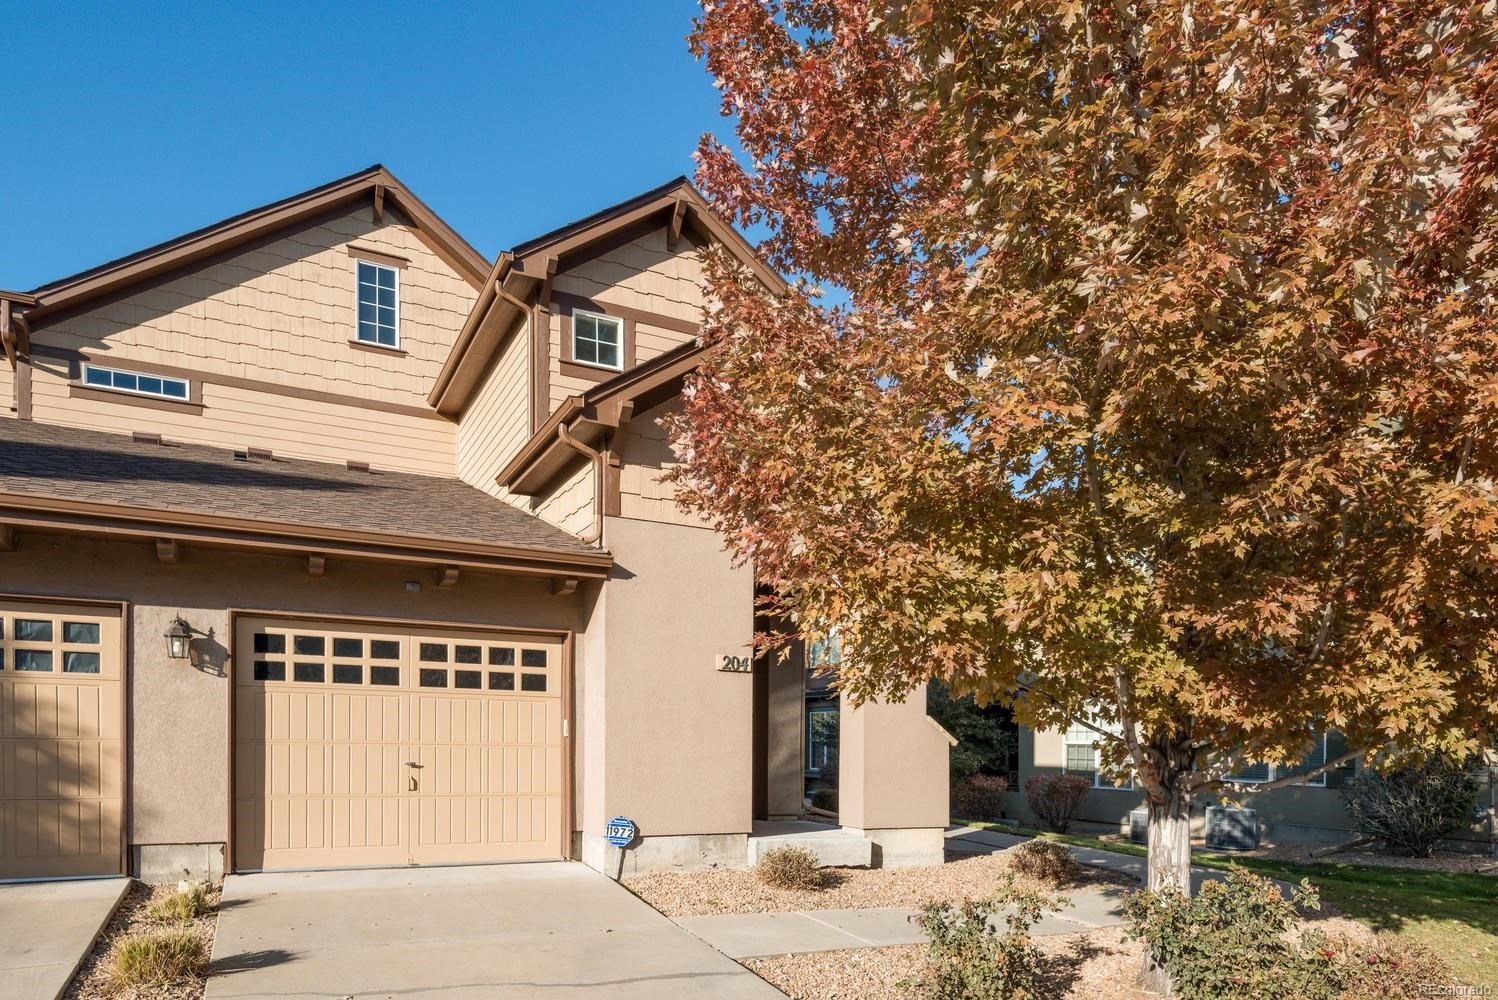 MLS# 3376183 - 2 - 11972 W Long Circle #204, Littleton, CO 80127